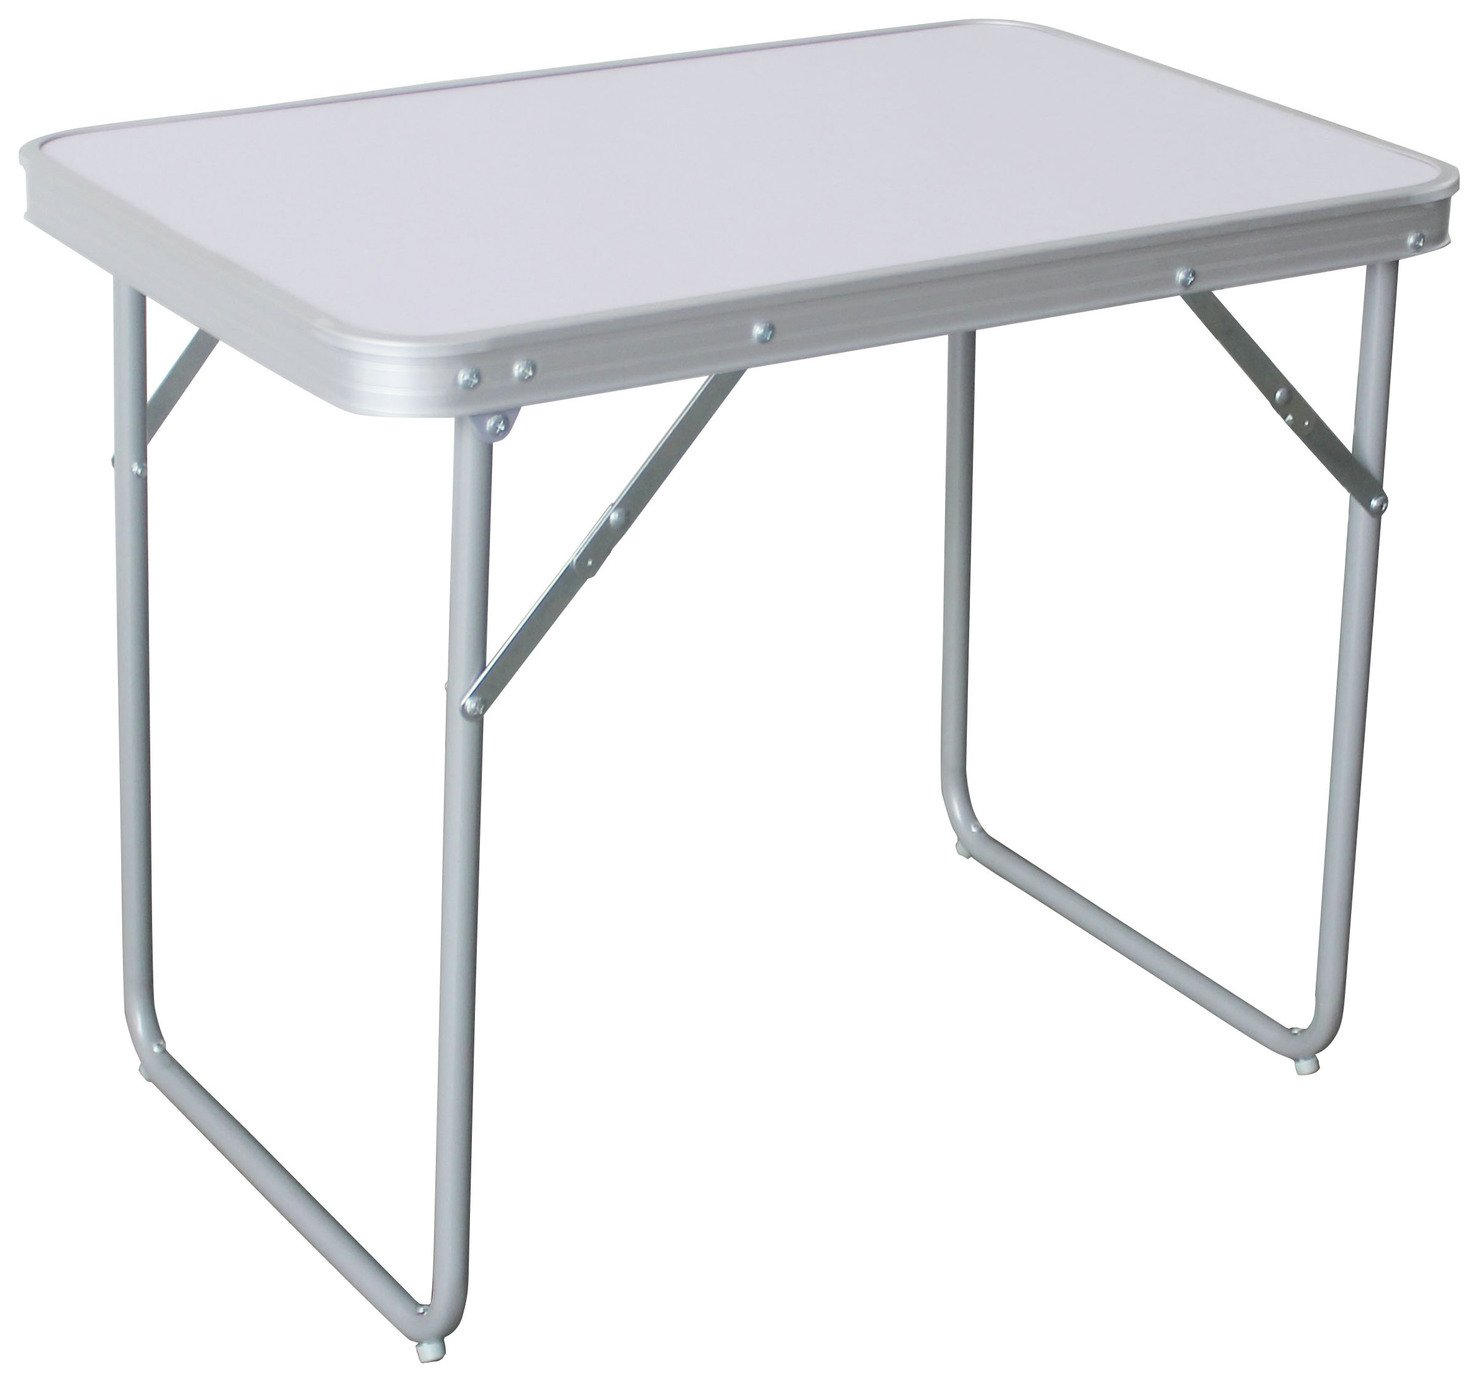 Merveilleux Folding Camping Table